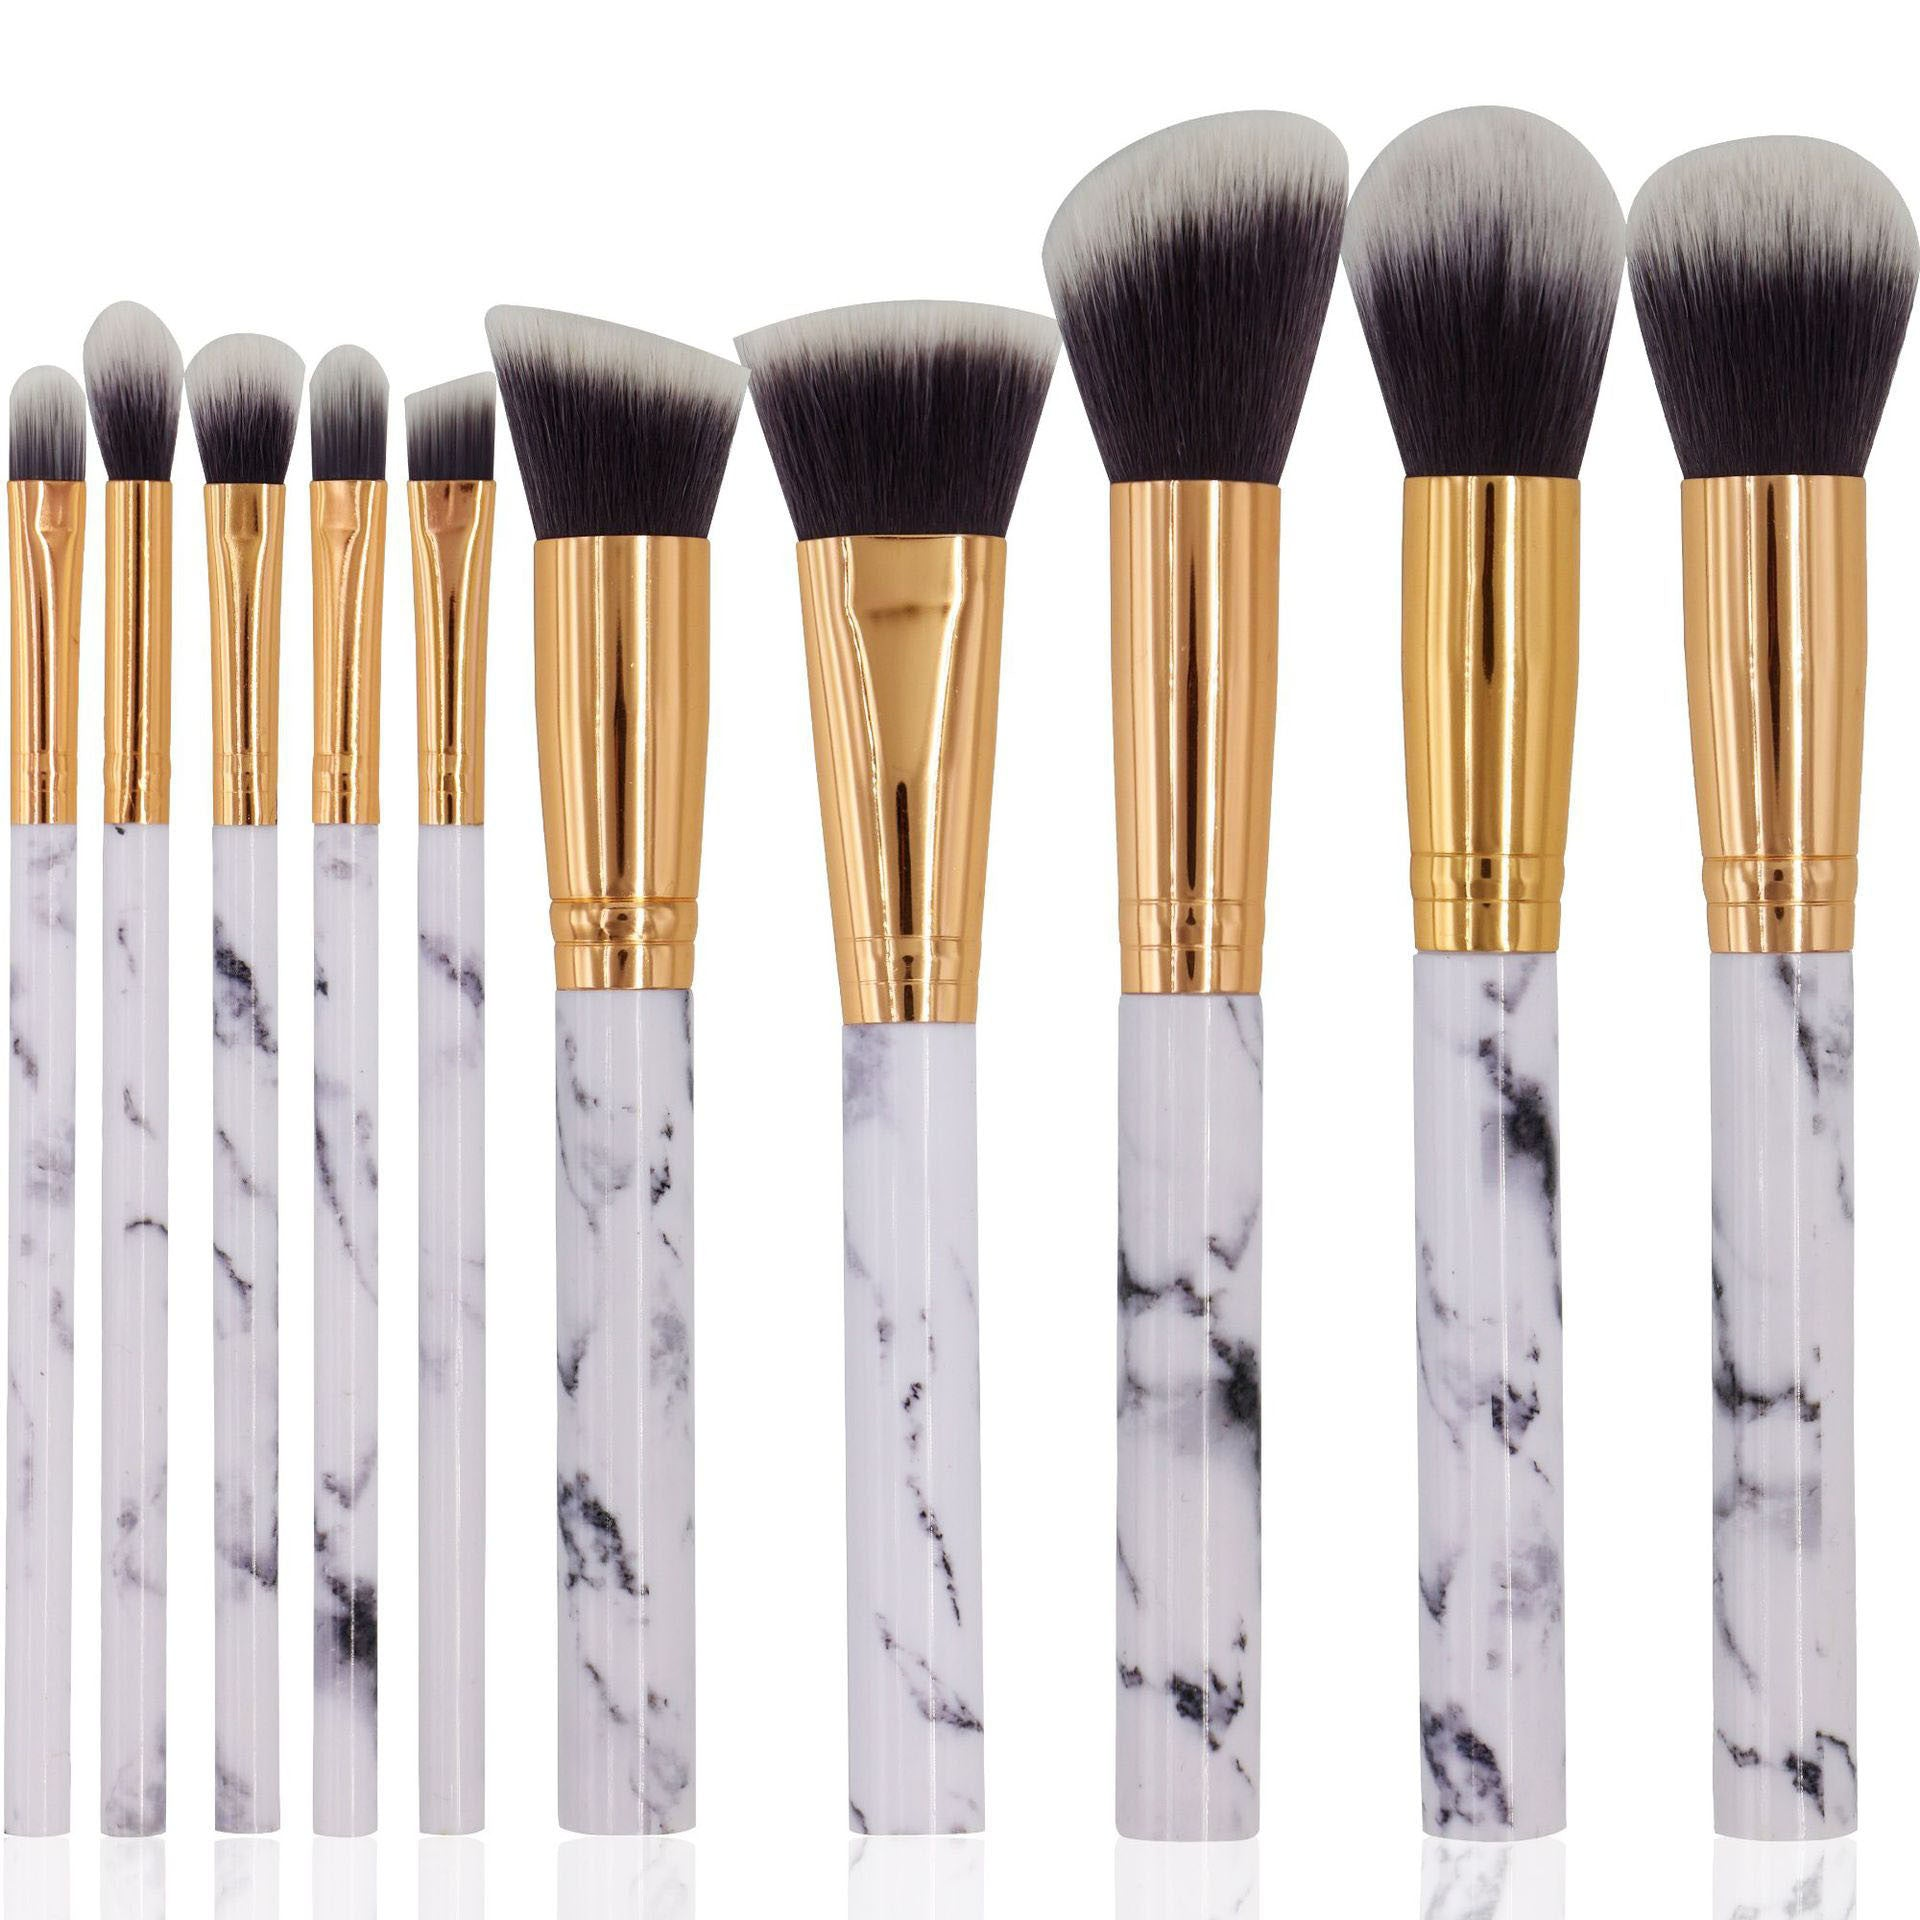 Makeup Brushes 10 Pieces, Makeup Brush Set, Face Eyeliner Blush Contour Foundation Cosmetic Brushes for Powder Liquid Cream